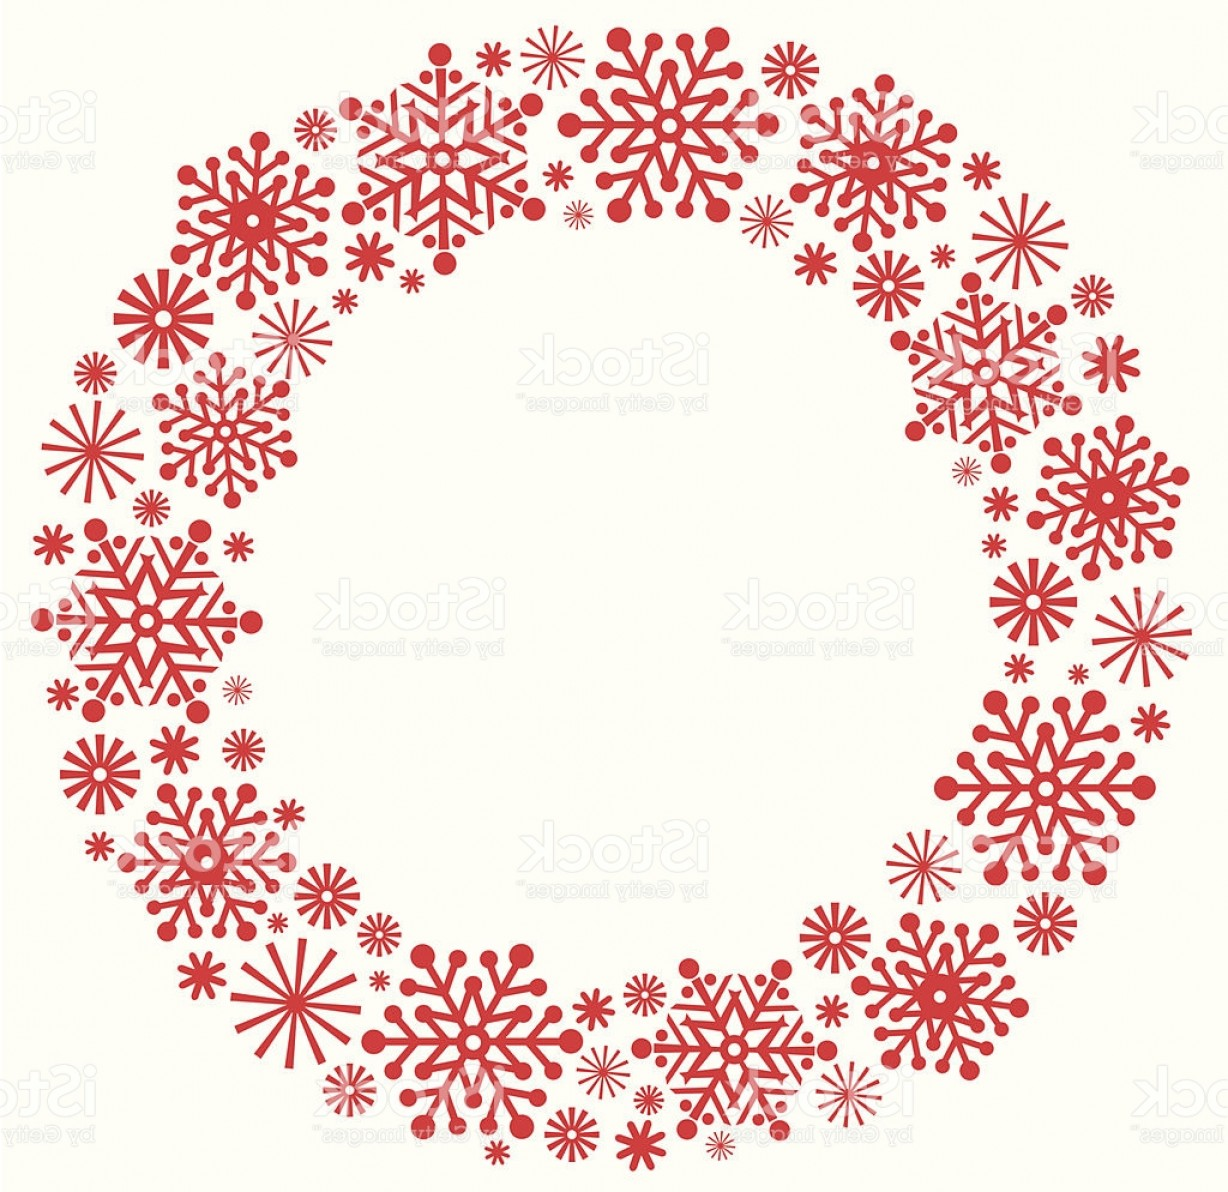 Vector Snowflake Wreath: Snowflake Christmas Wreath In Silhouette Gm